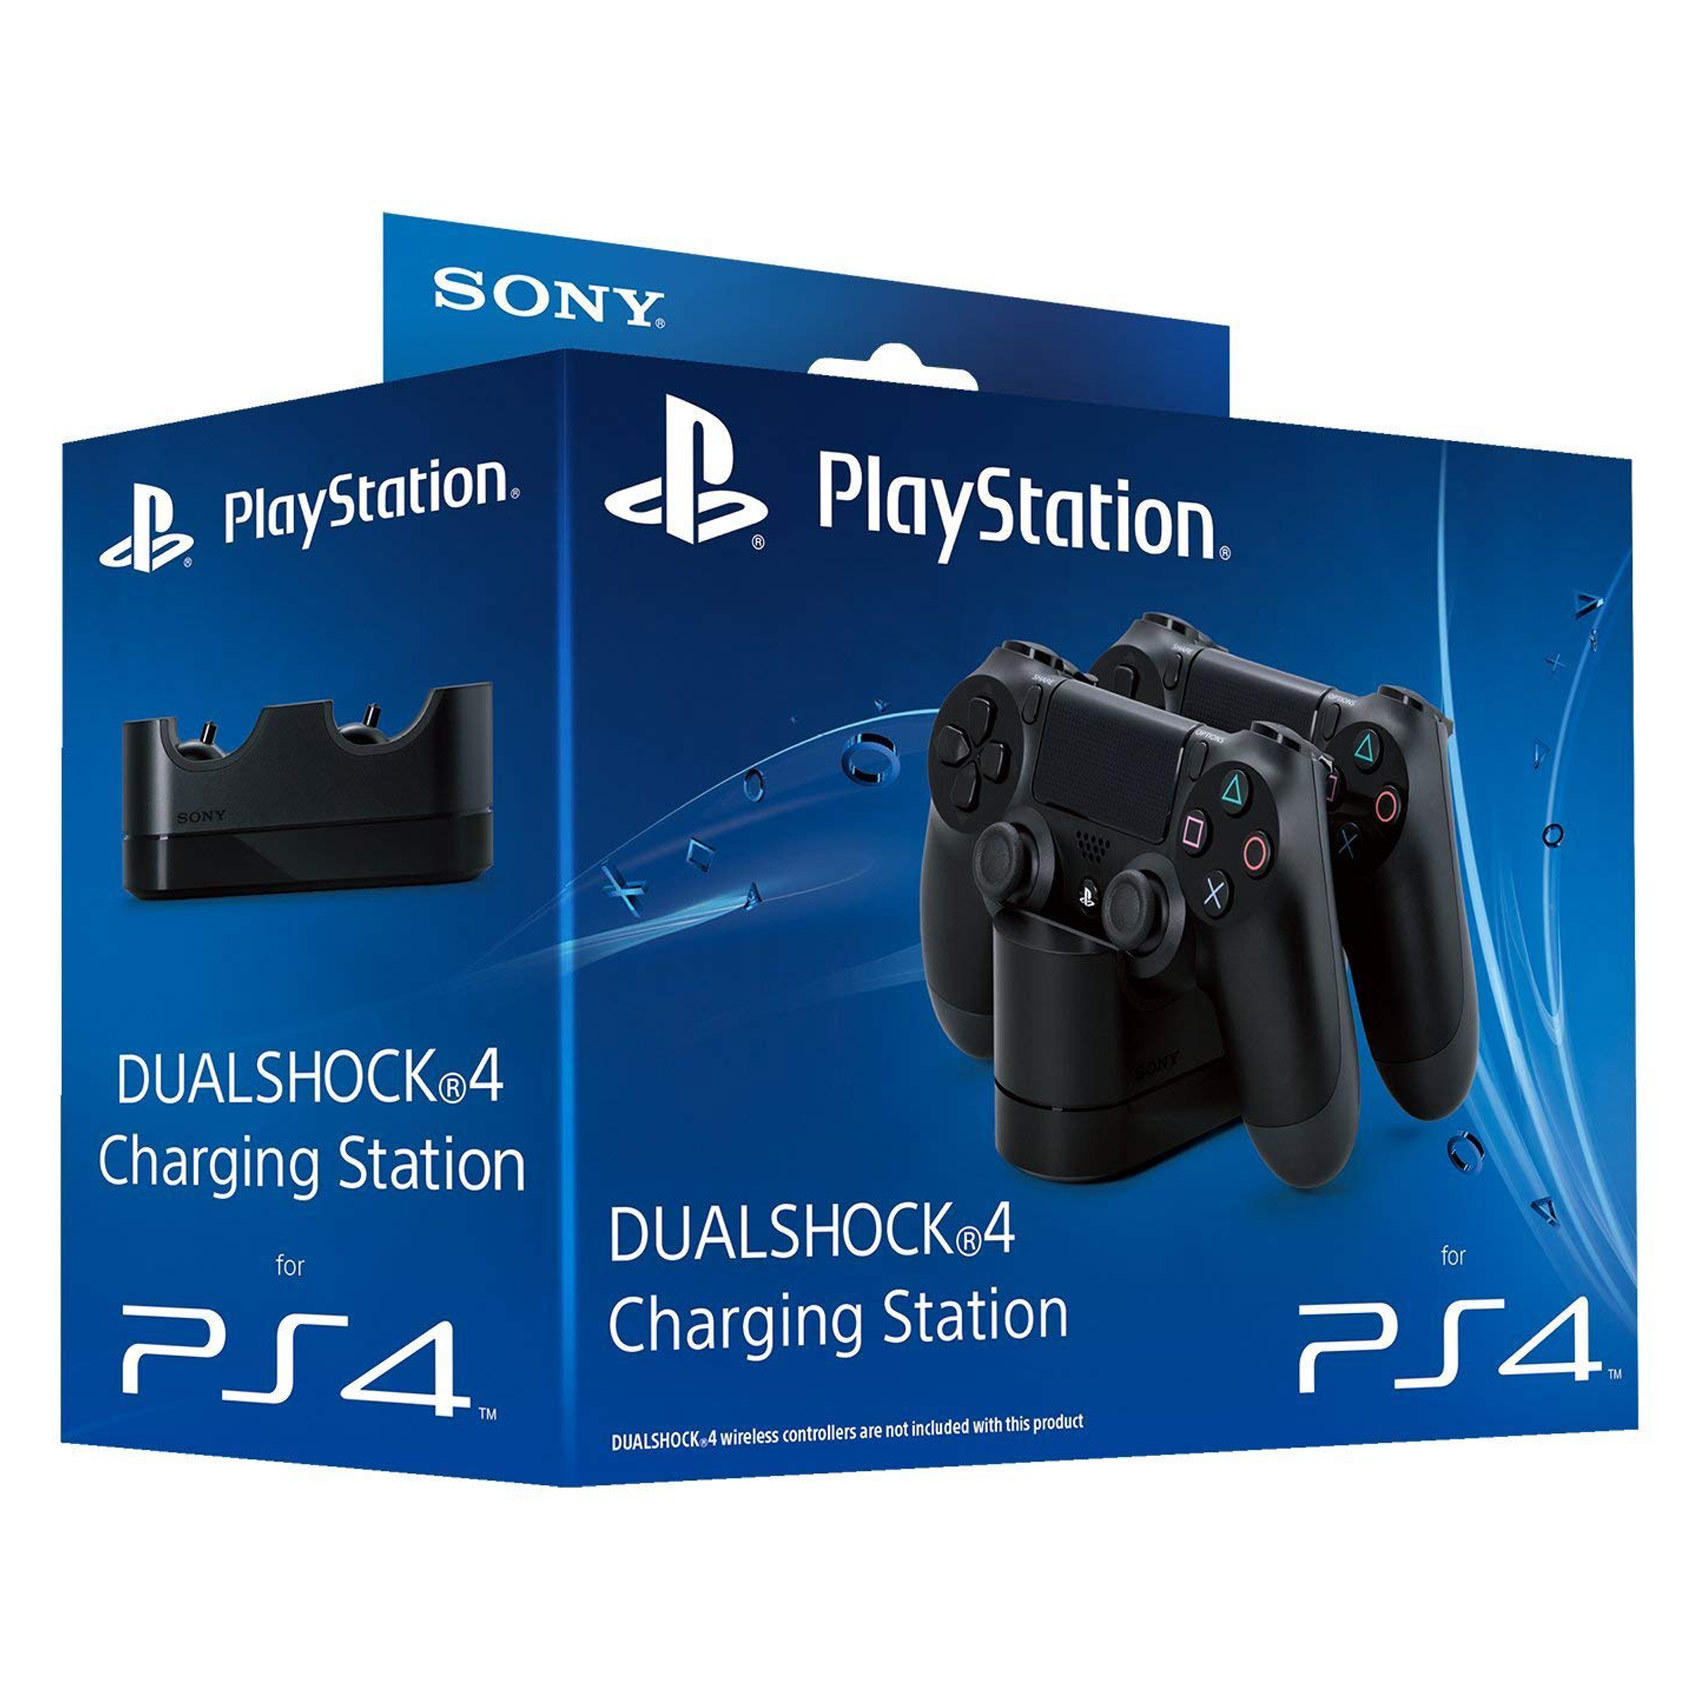 SONY PS4 DUAL SHOCK CHARGING STATIO